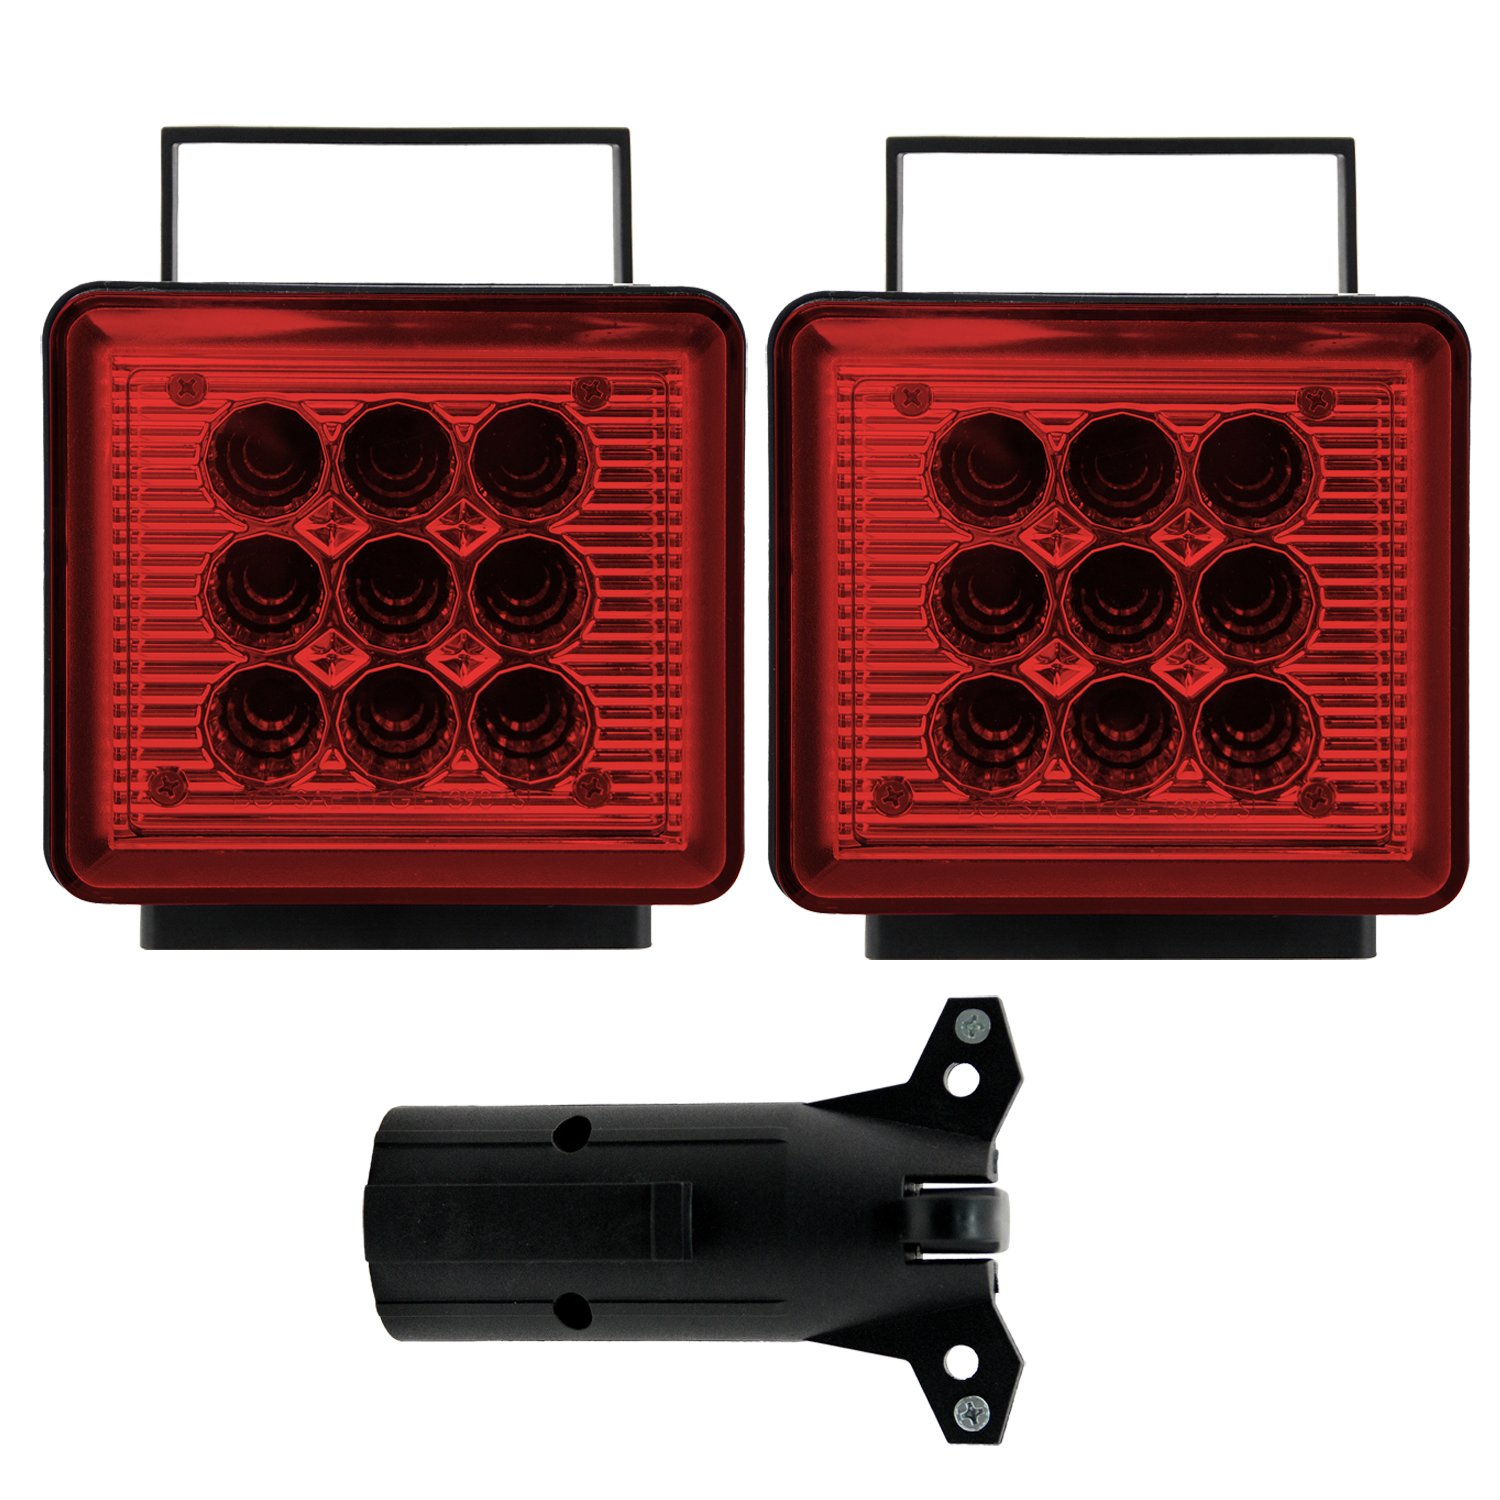 Bully NV-5164 Wireless Trailer Red LED Light Kit with Magnetic Base for RV, Campers, Boats, Farming Equipment, Long Trailers, and Tow Trucks - Requires 12AA Battery by Bully